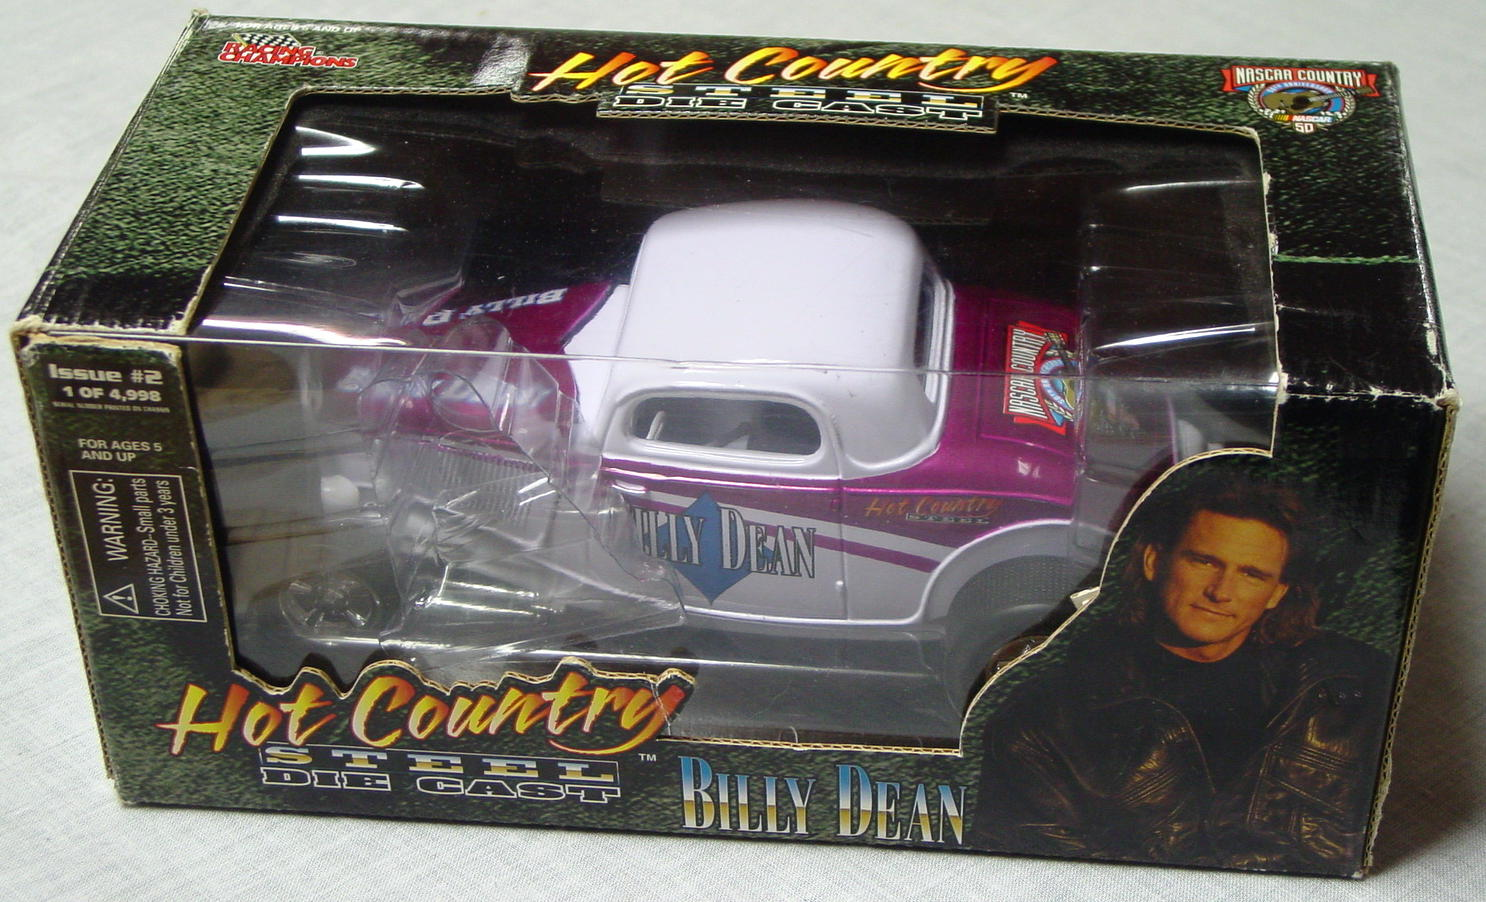 1_24 Scale - RC Hot Country Billy Dean white roadster